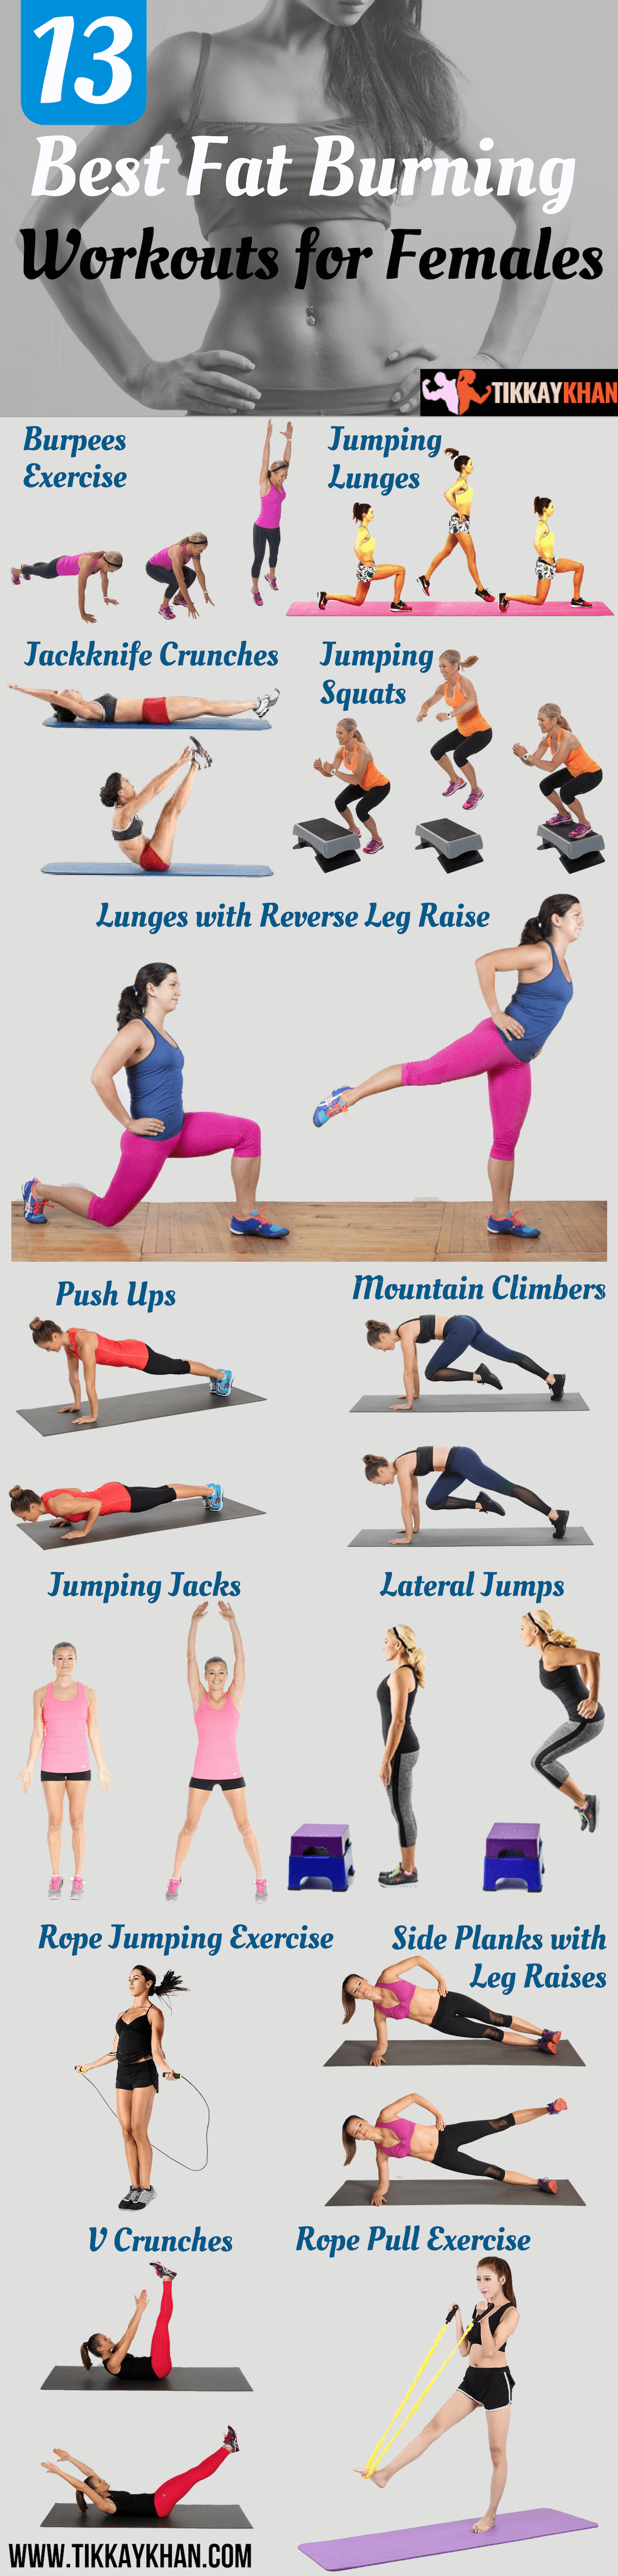 Pin On Exercises For Women